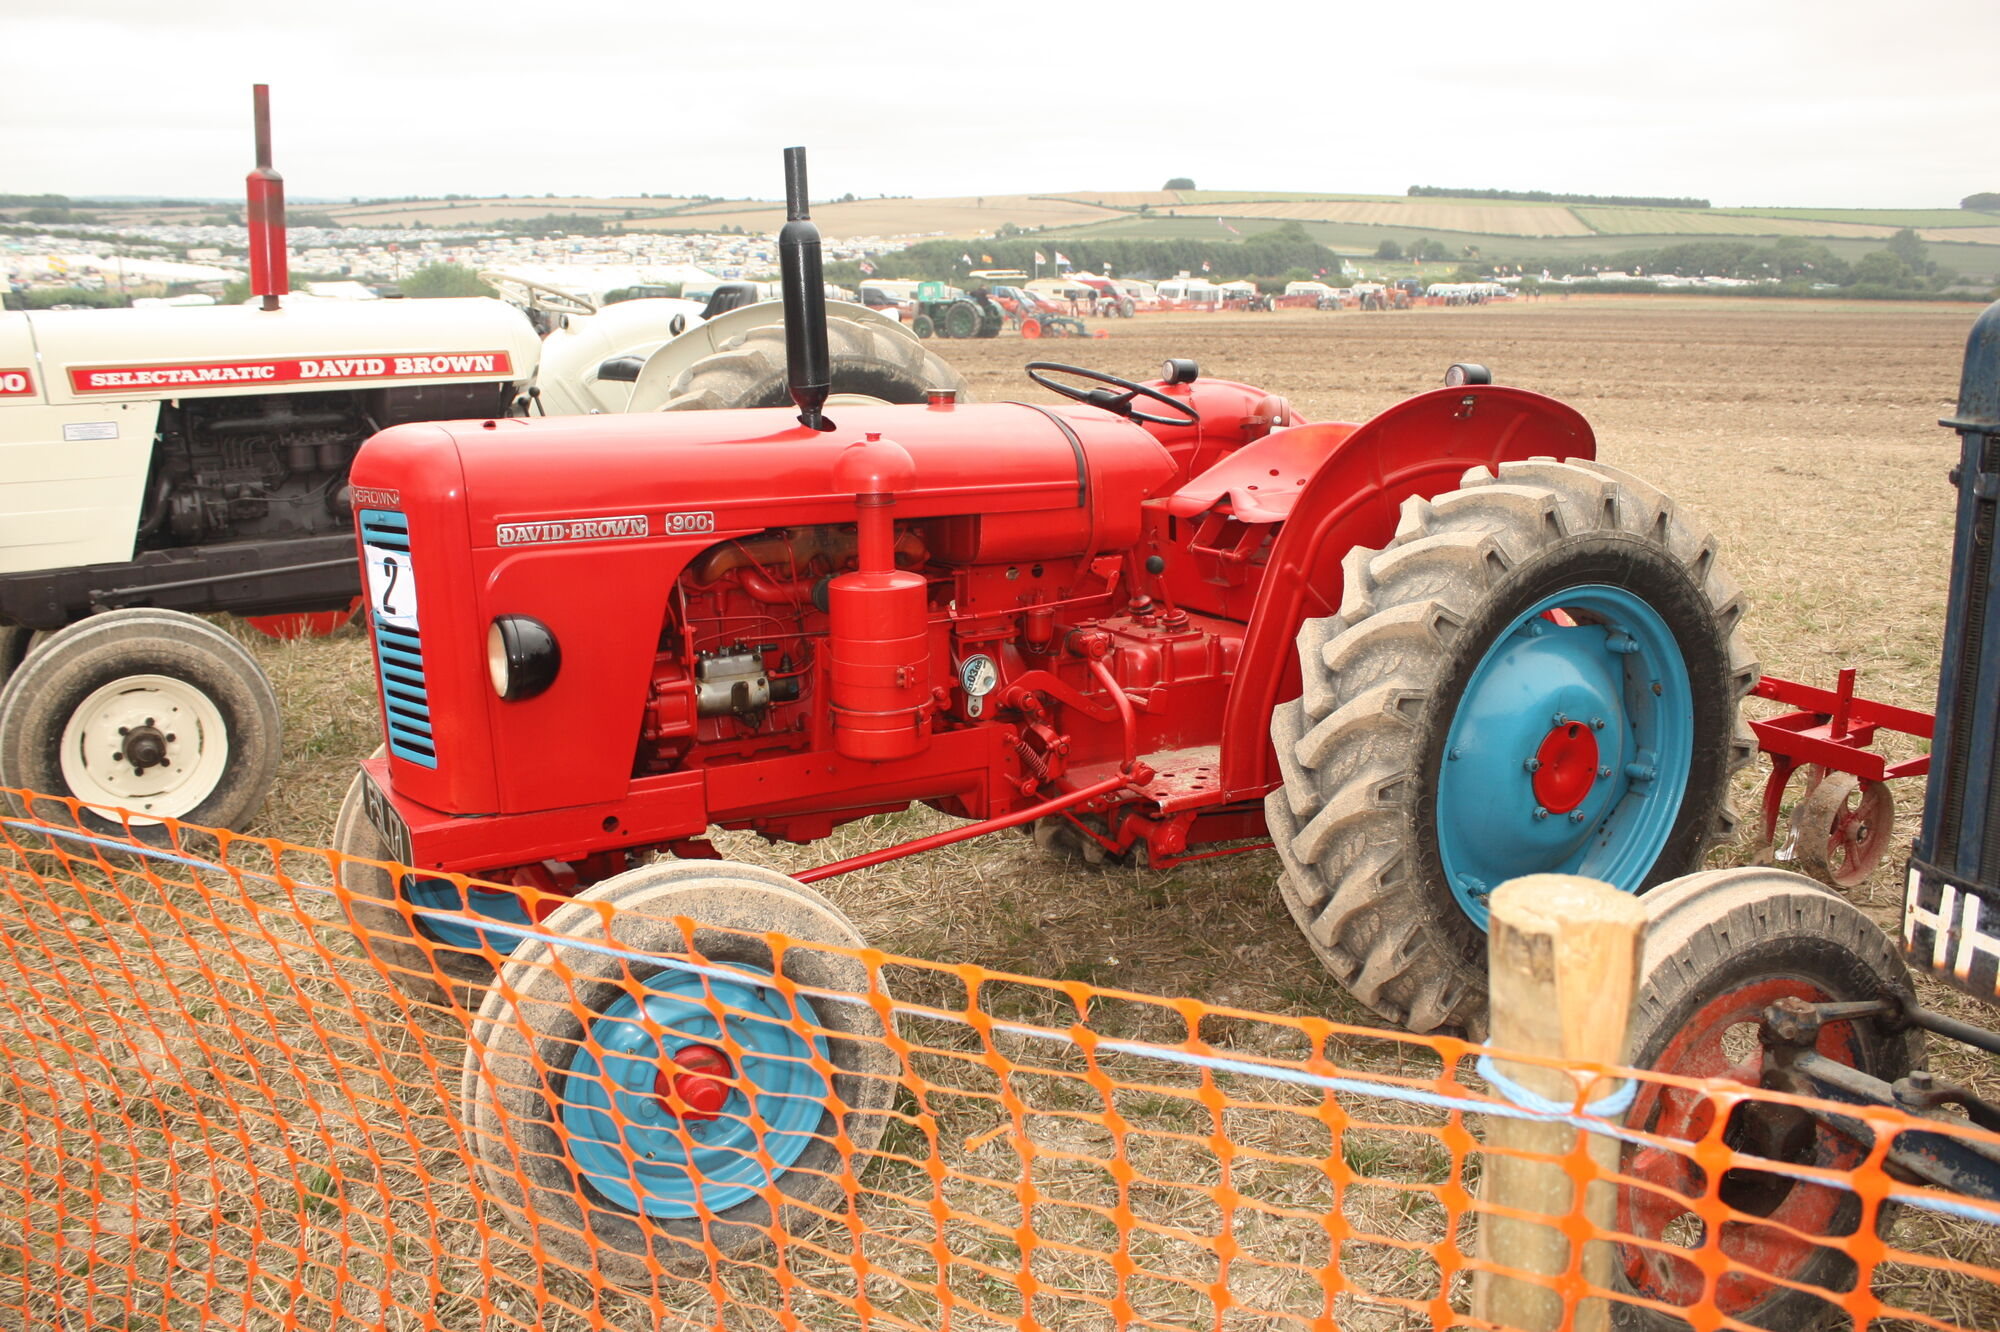 David Brown 900 | Tractor & Construction Plant Wiki | FANDOM powered by  Wikia